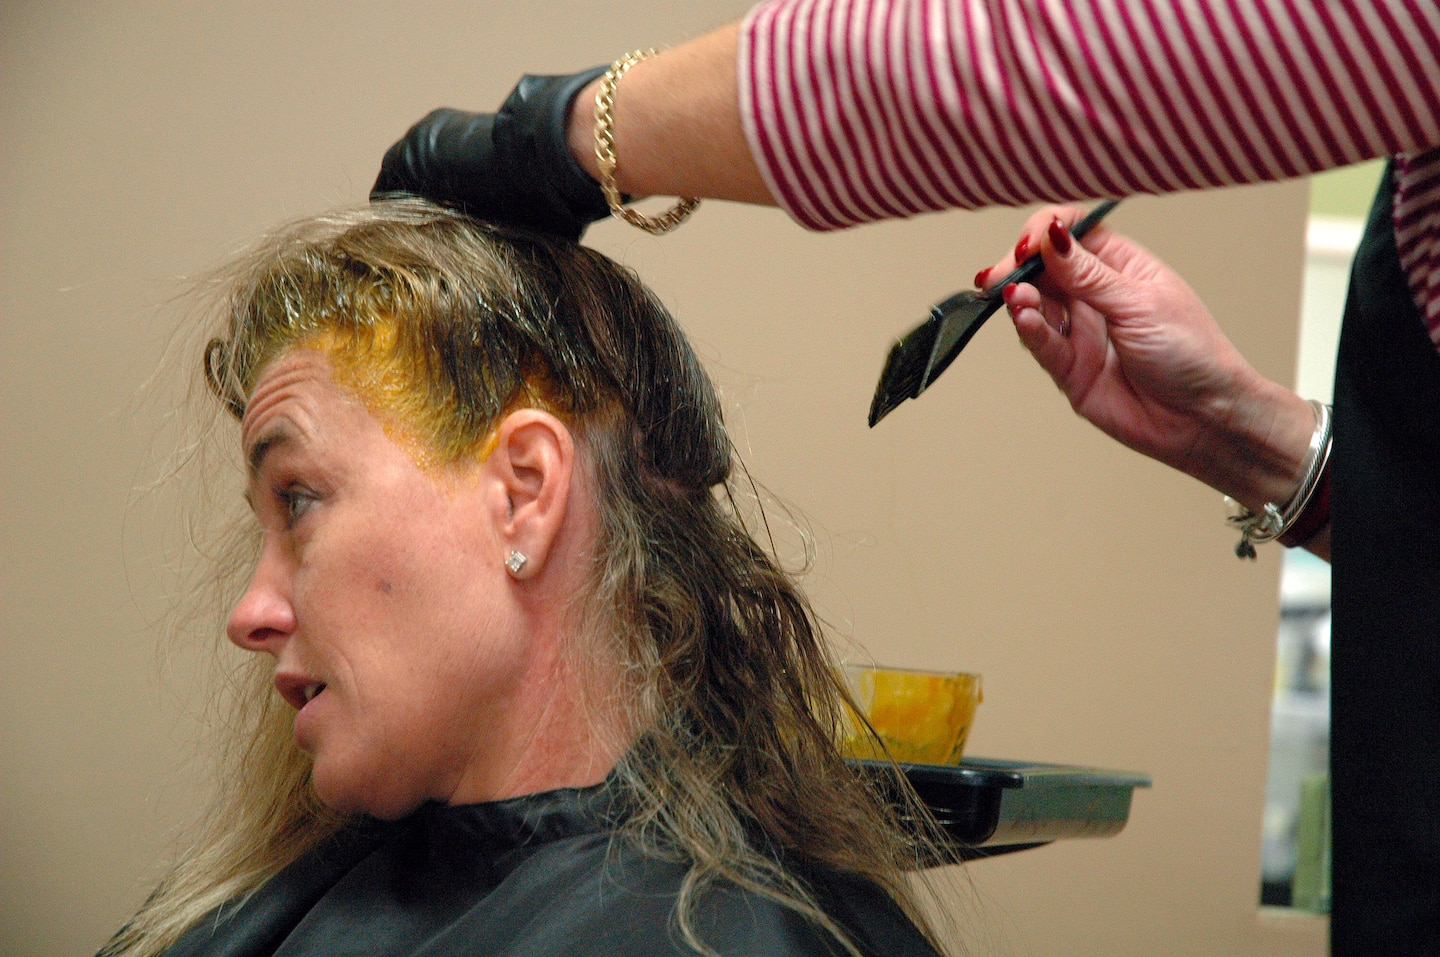 Hairstylist Applying Dye To A Client039s